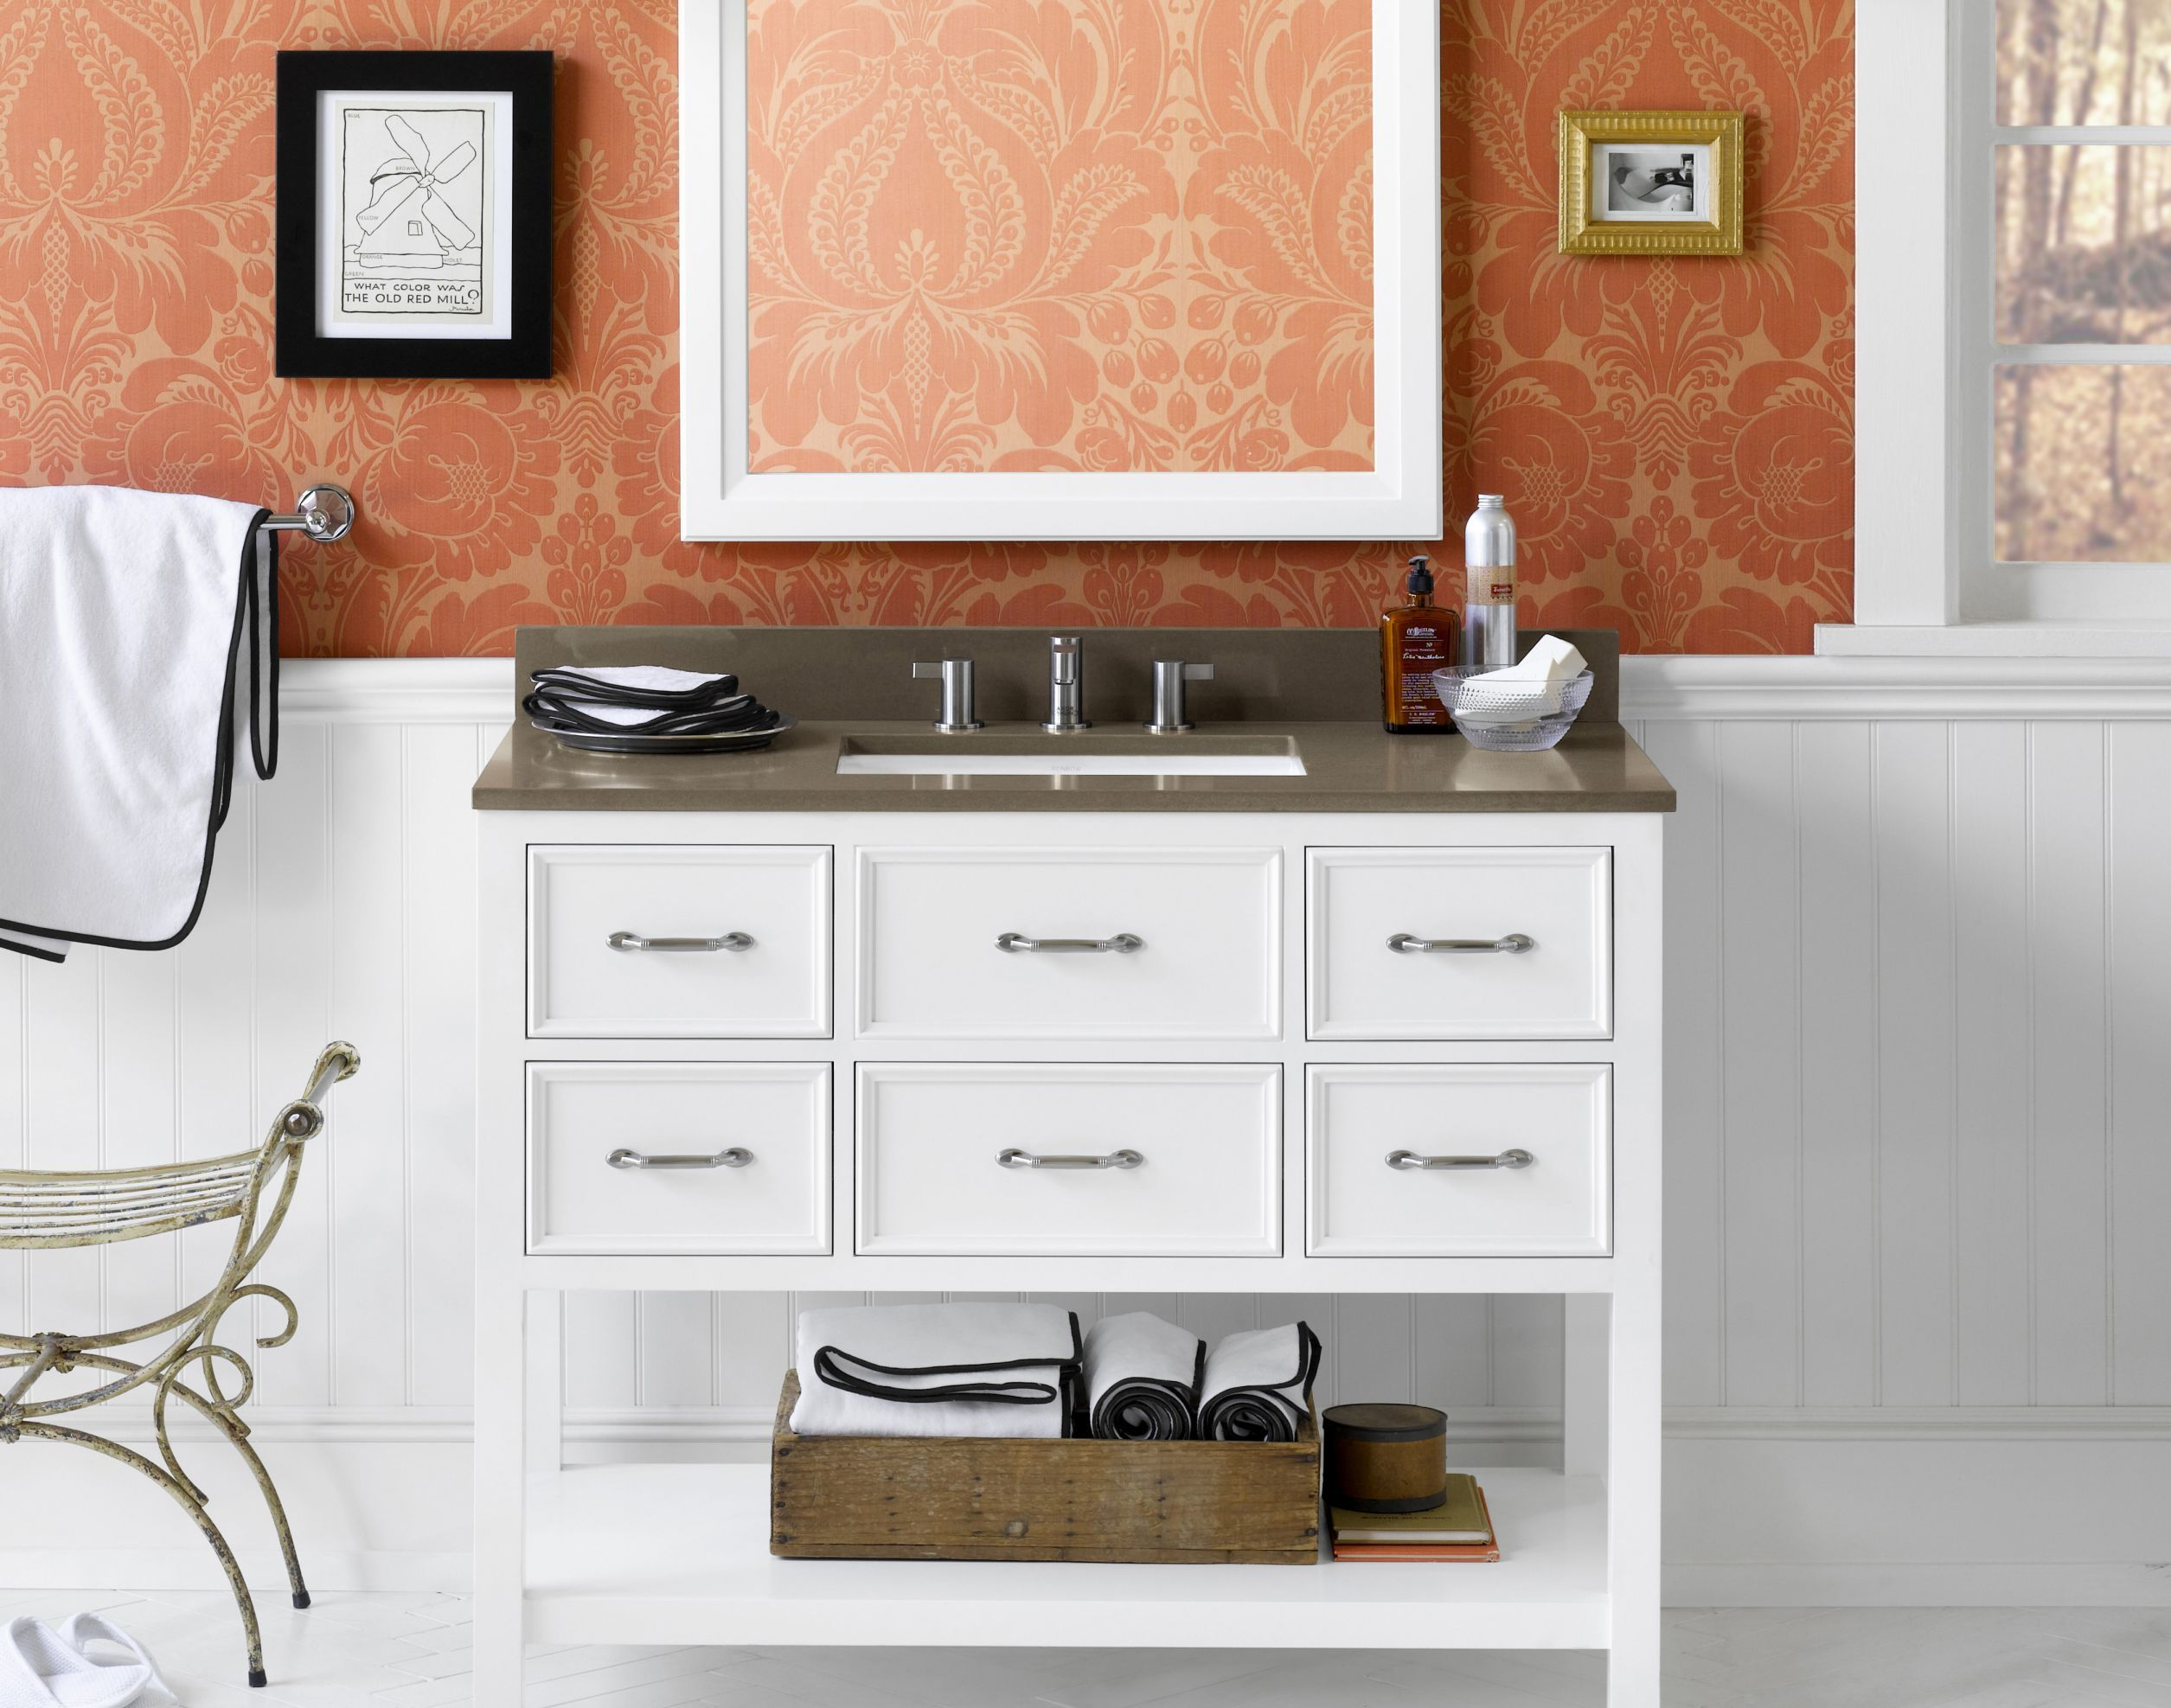 Ronbow Bathroom Vanities 052742 Newcastle 42 Wood Vanity Cabinet With Five Functional Drawers And Open Bottom Shelf